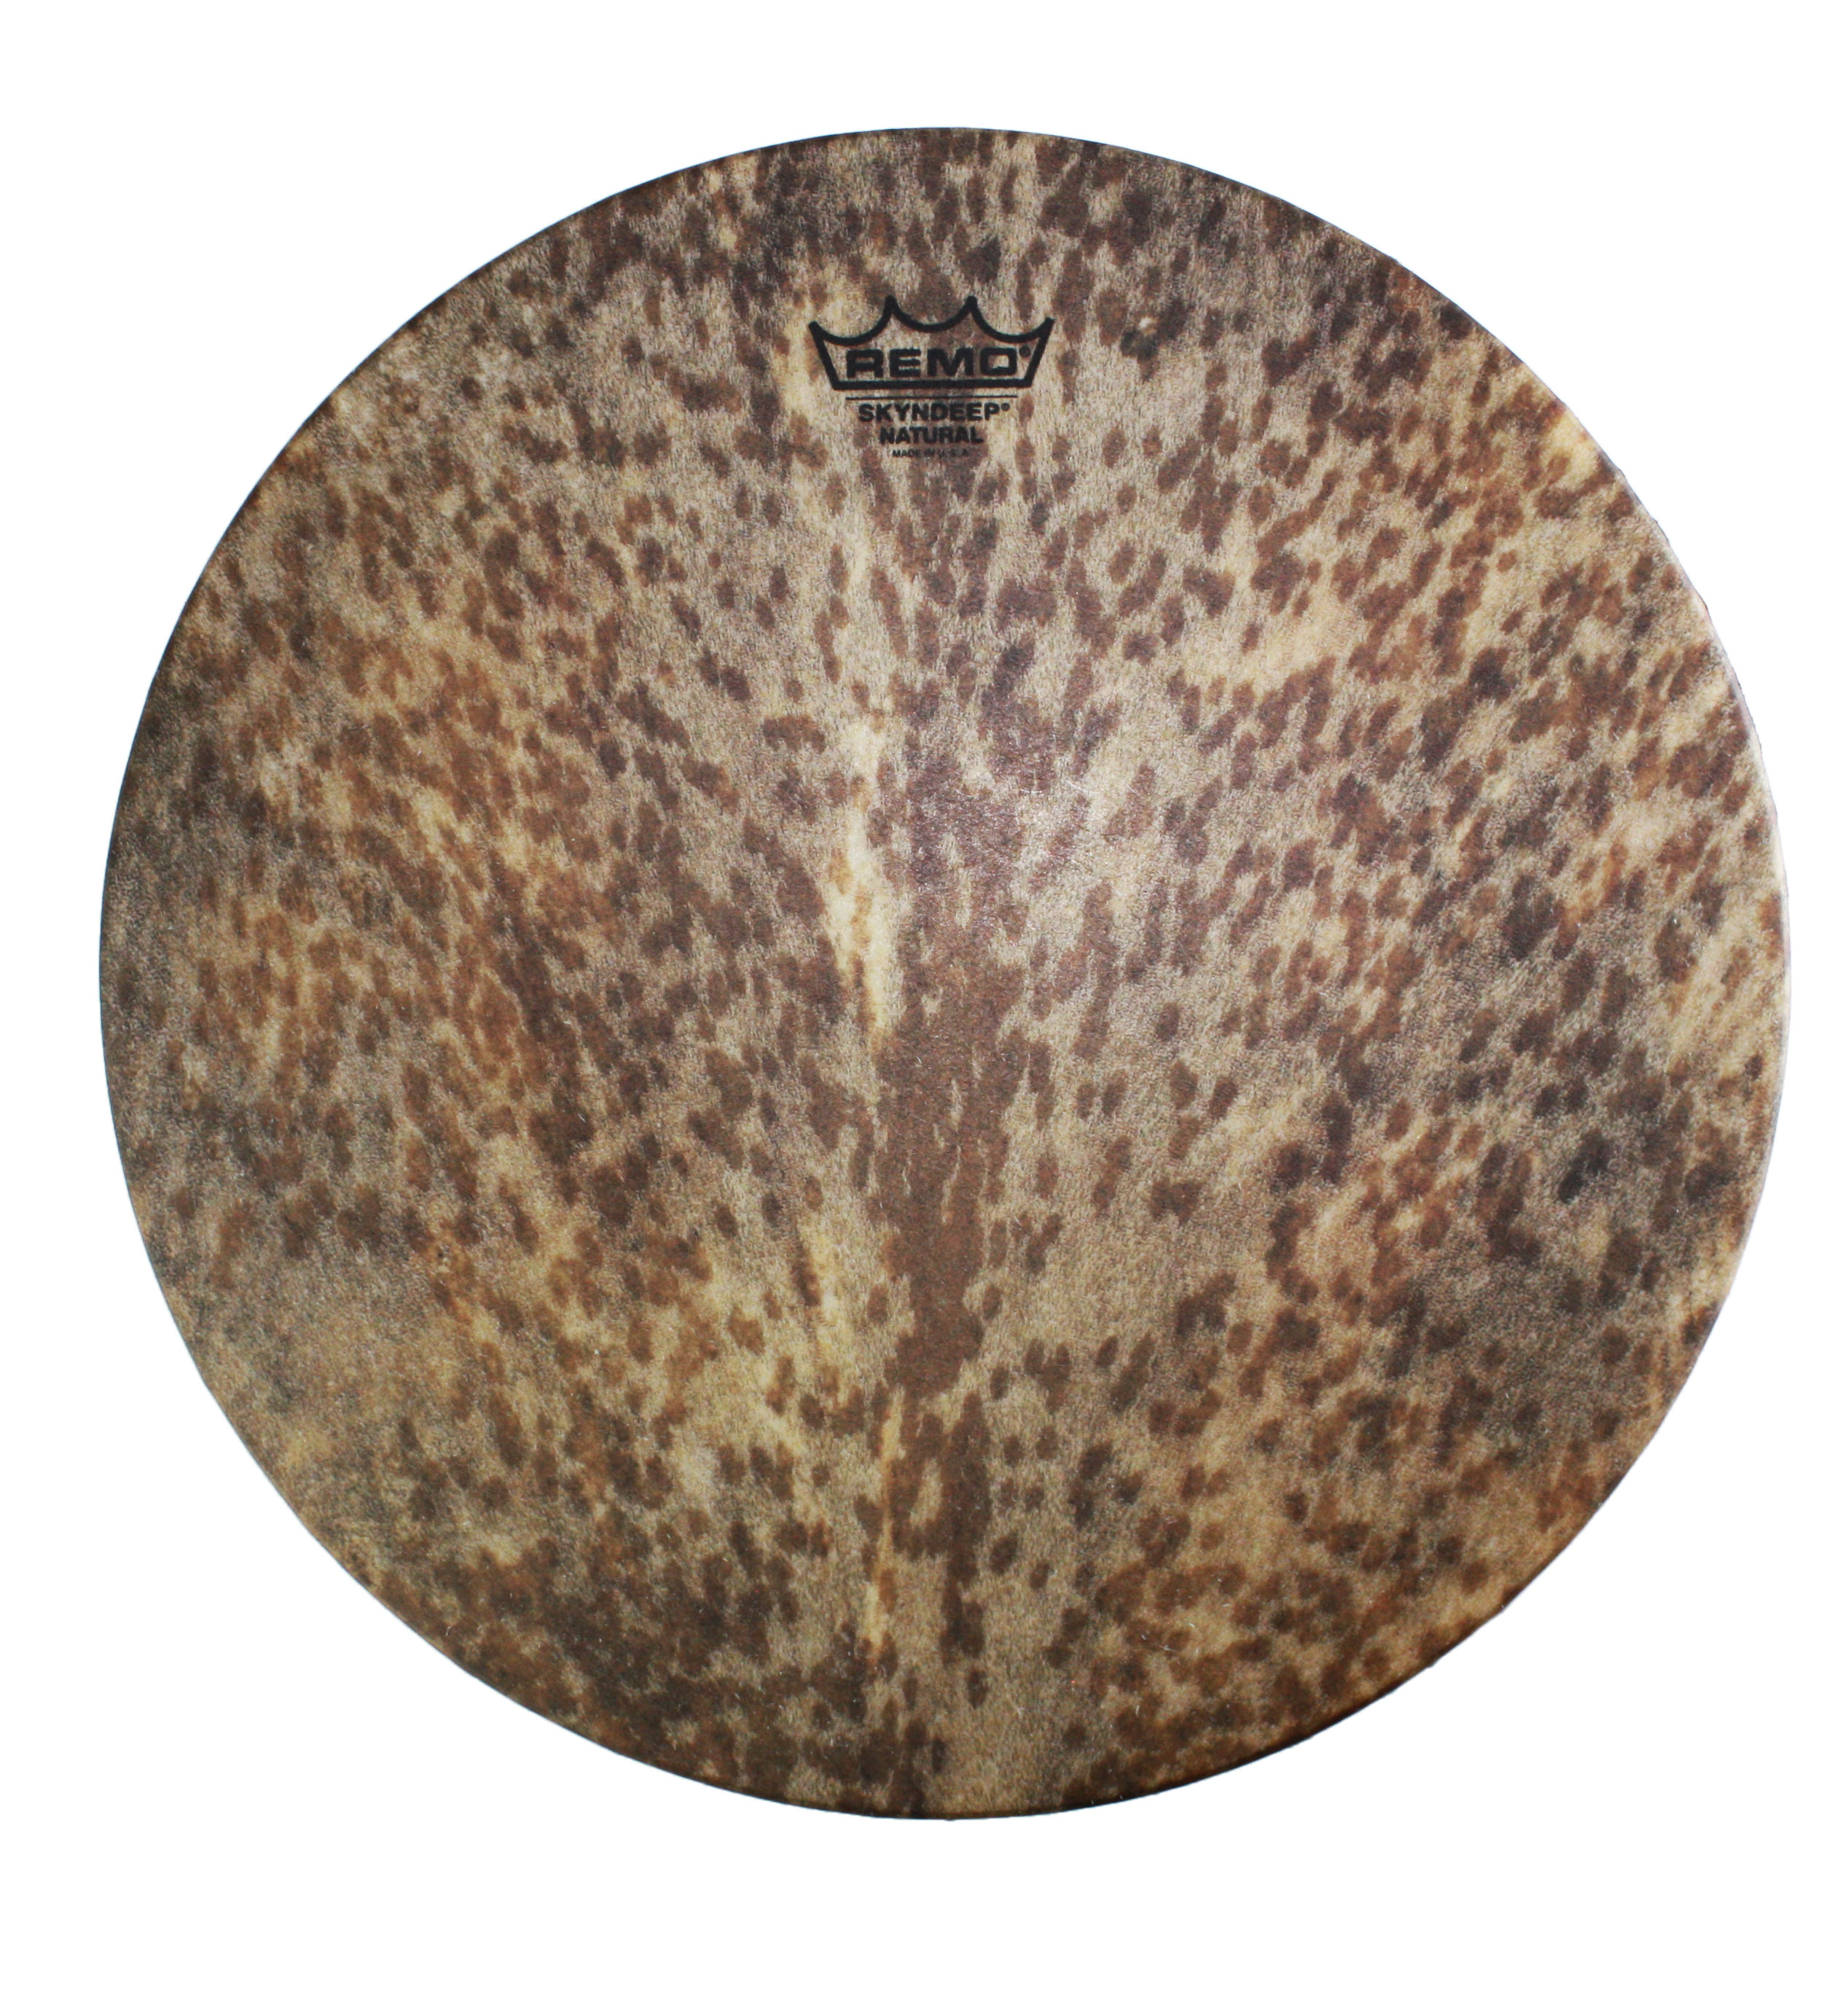 "Remo 14"" Mondo Skyndeep Djembe Drum Head with Goat Stripe Brown Graphic"